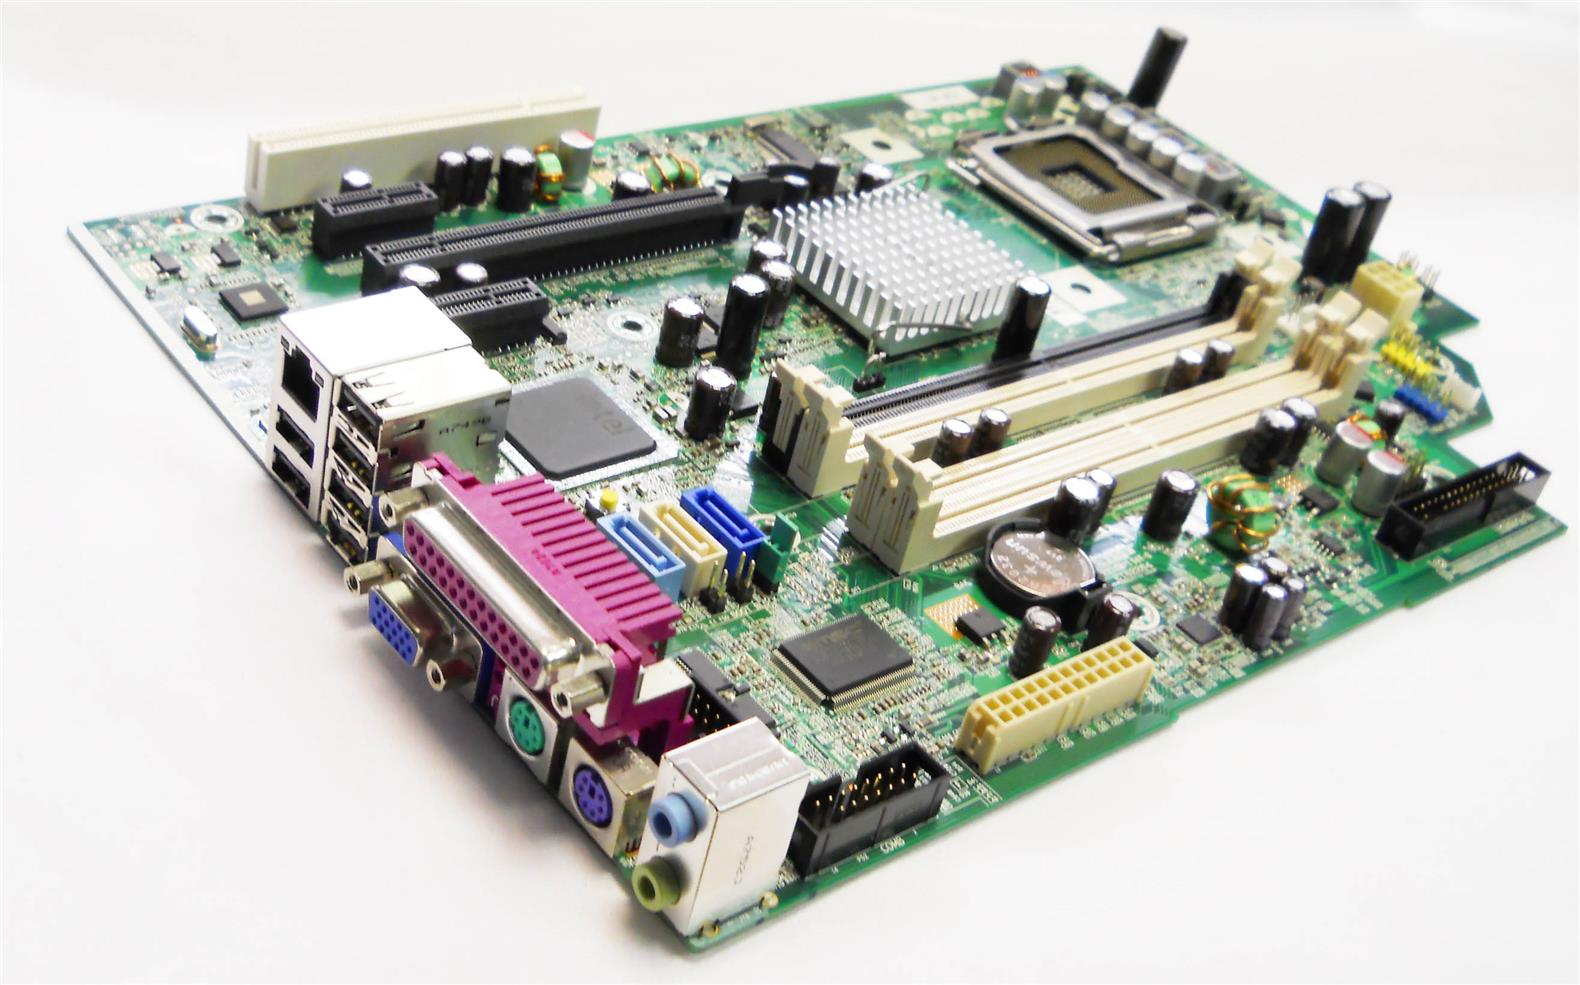 Motherboard for HP DC7800 Small Form Factor PC - Vision IT